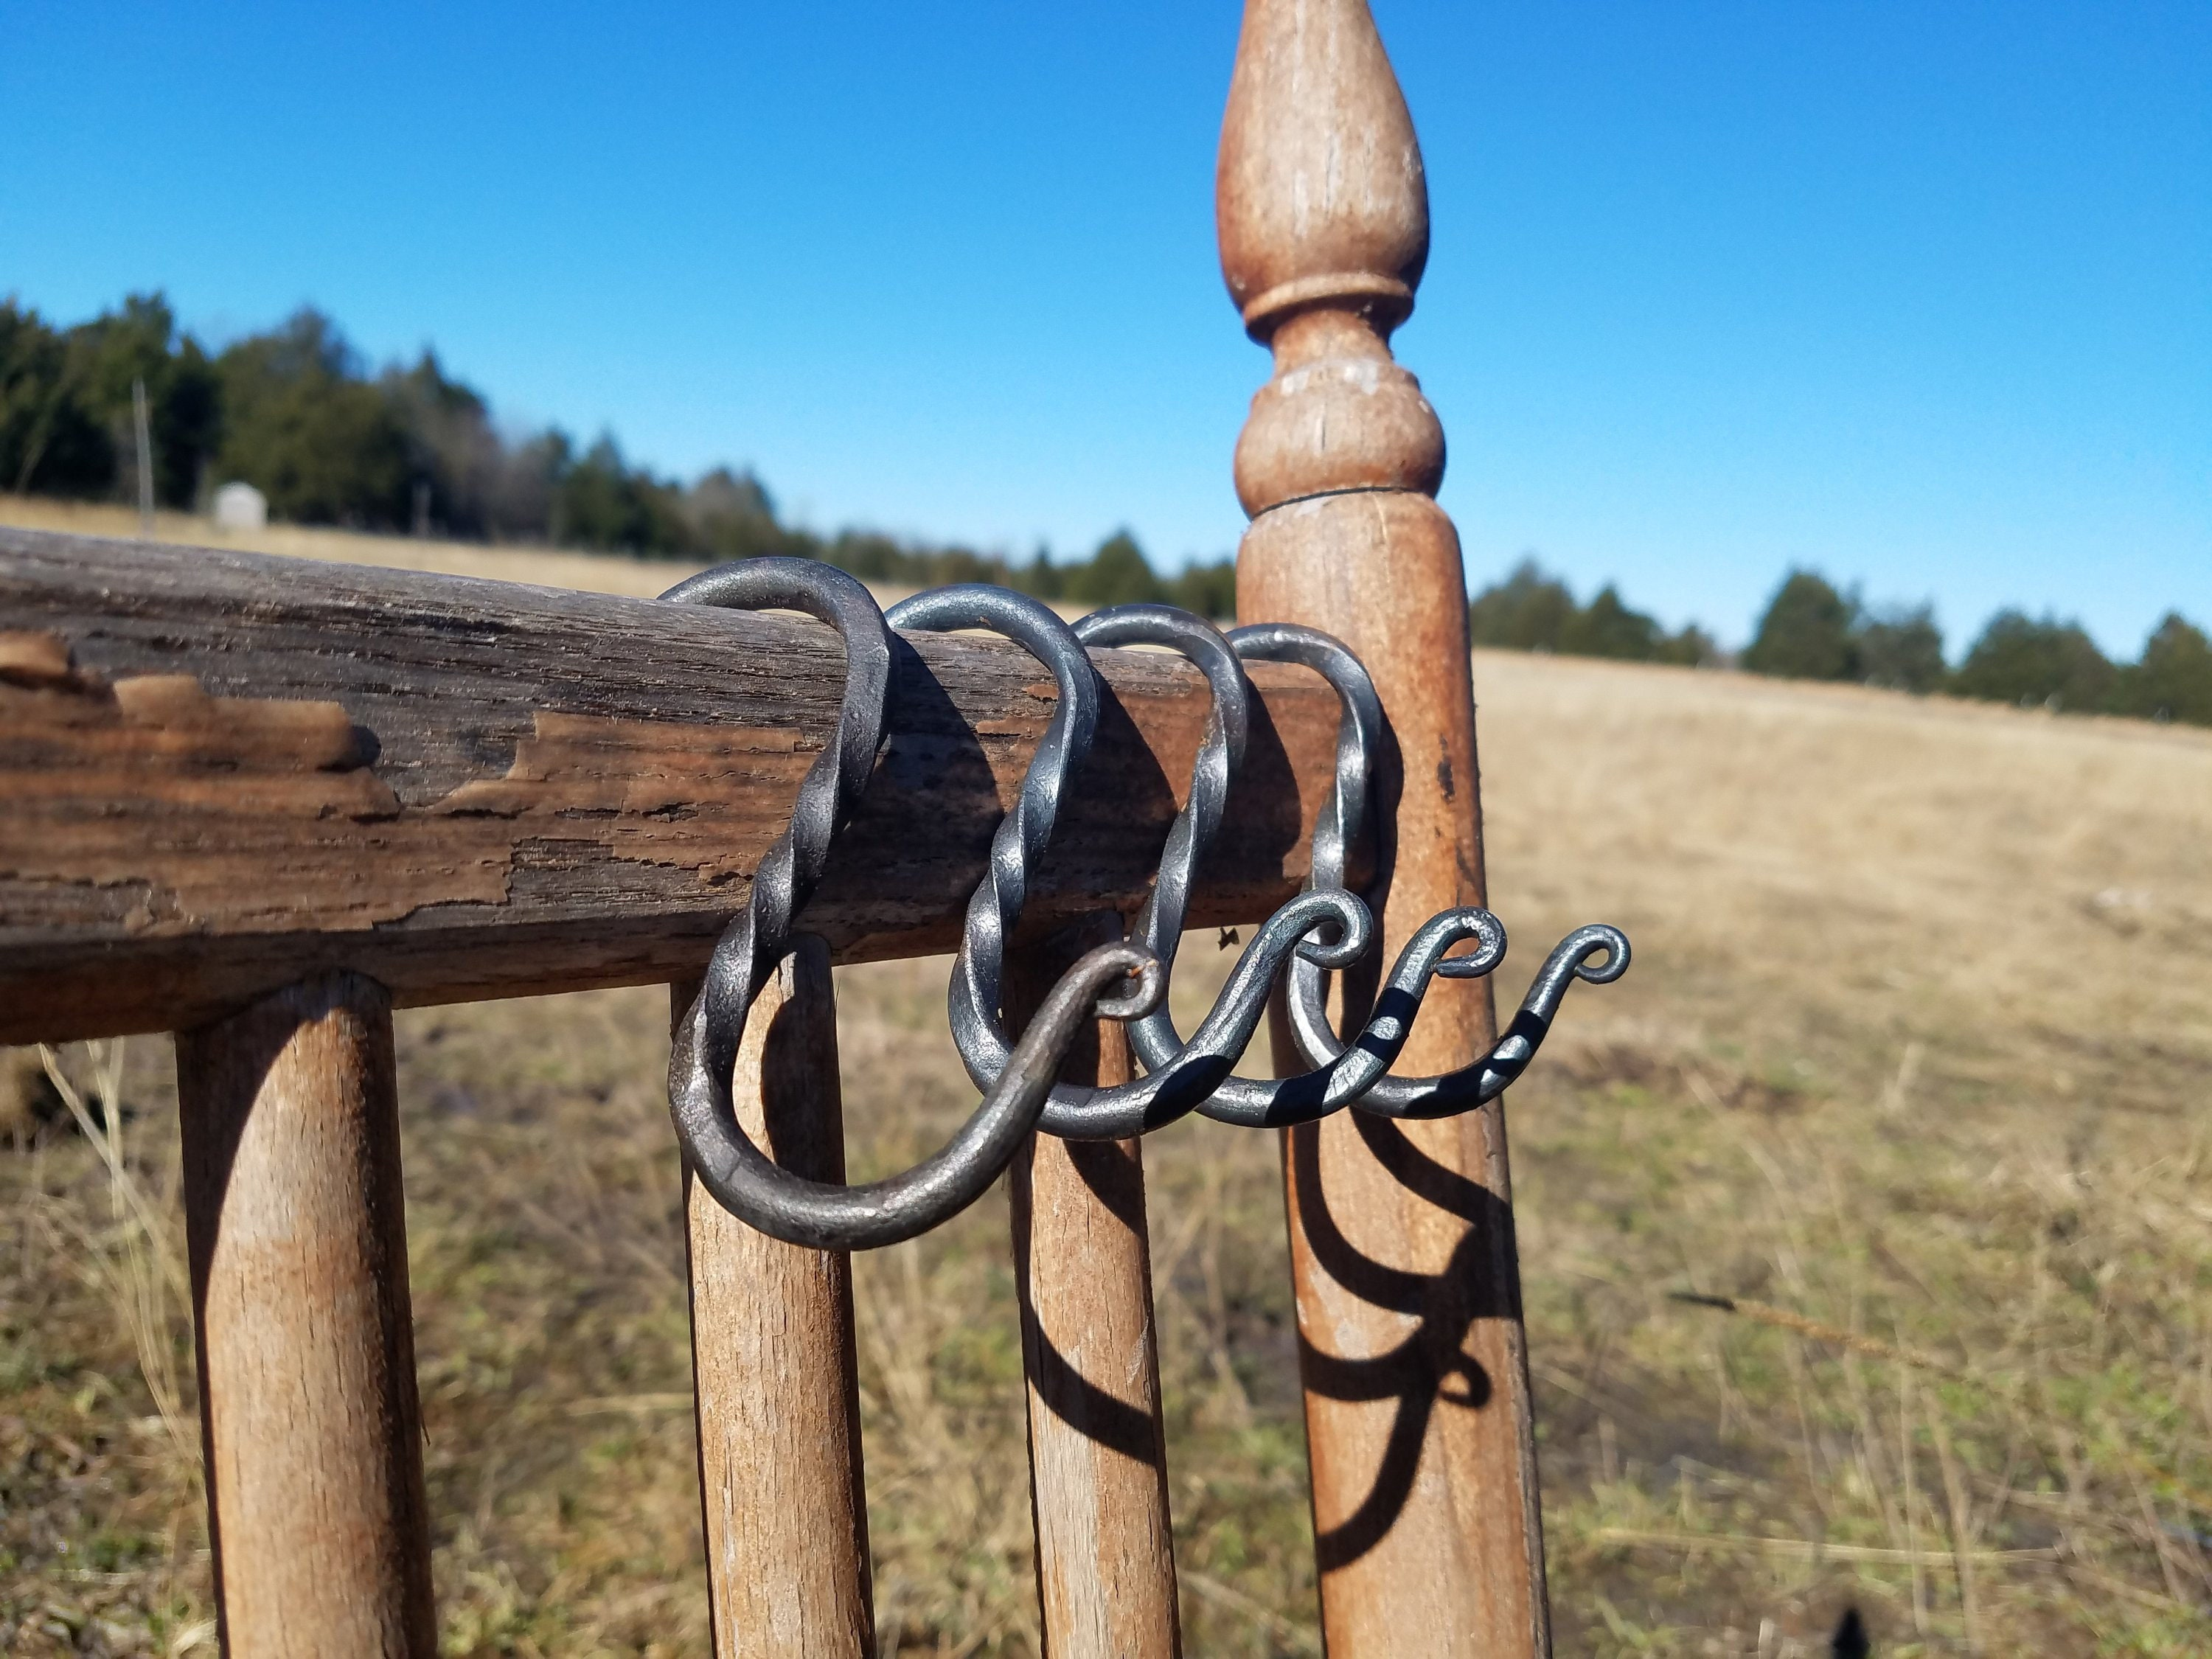 Hand Forged S Hook With Twist 3 Great For Shower Curtain Rings Pot Rack Hooks Hanging Plants Reenactment Camping Gear